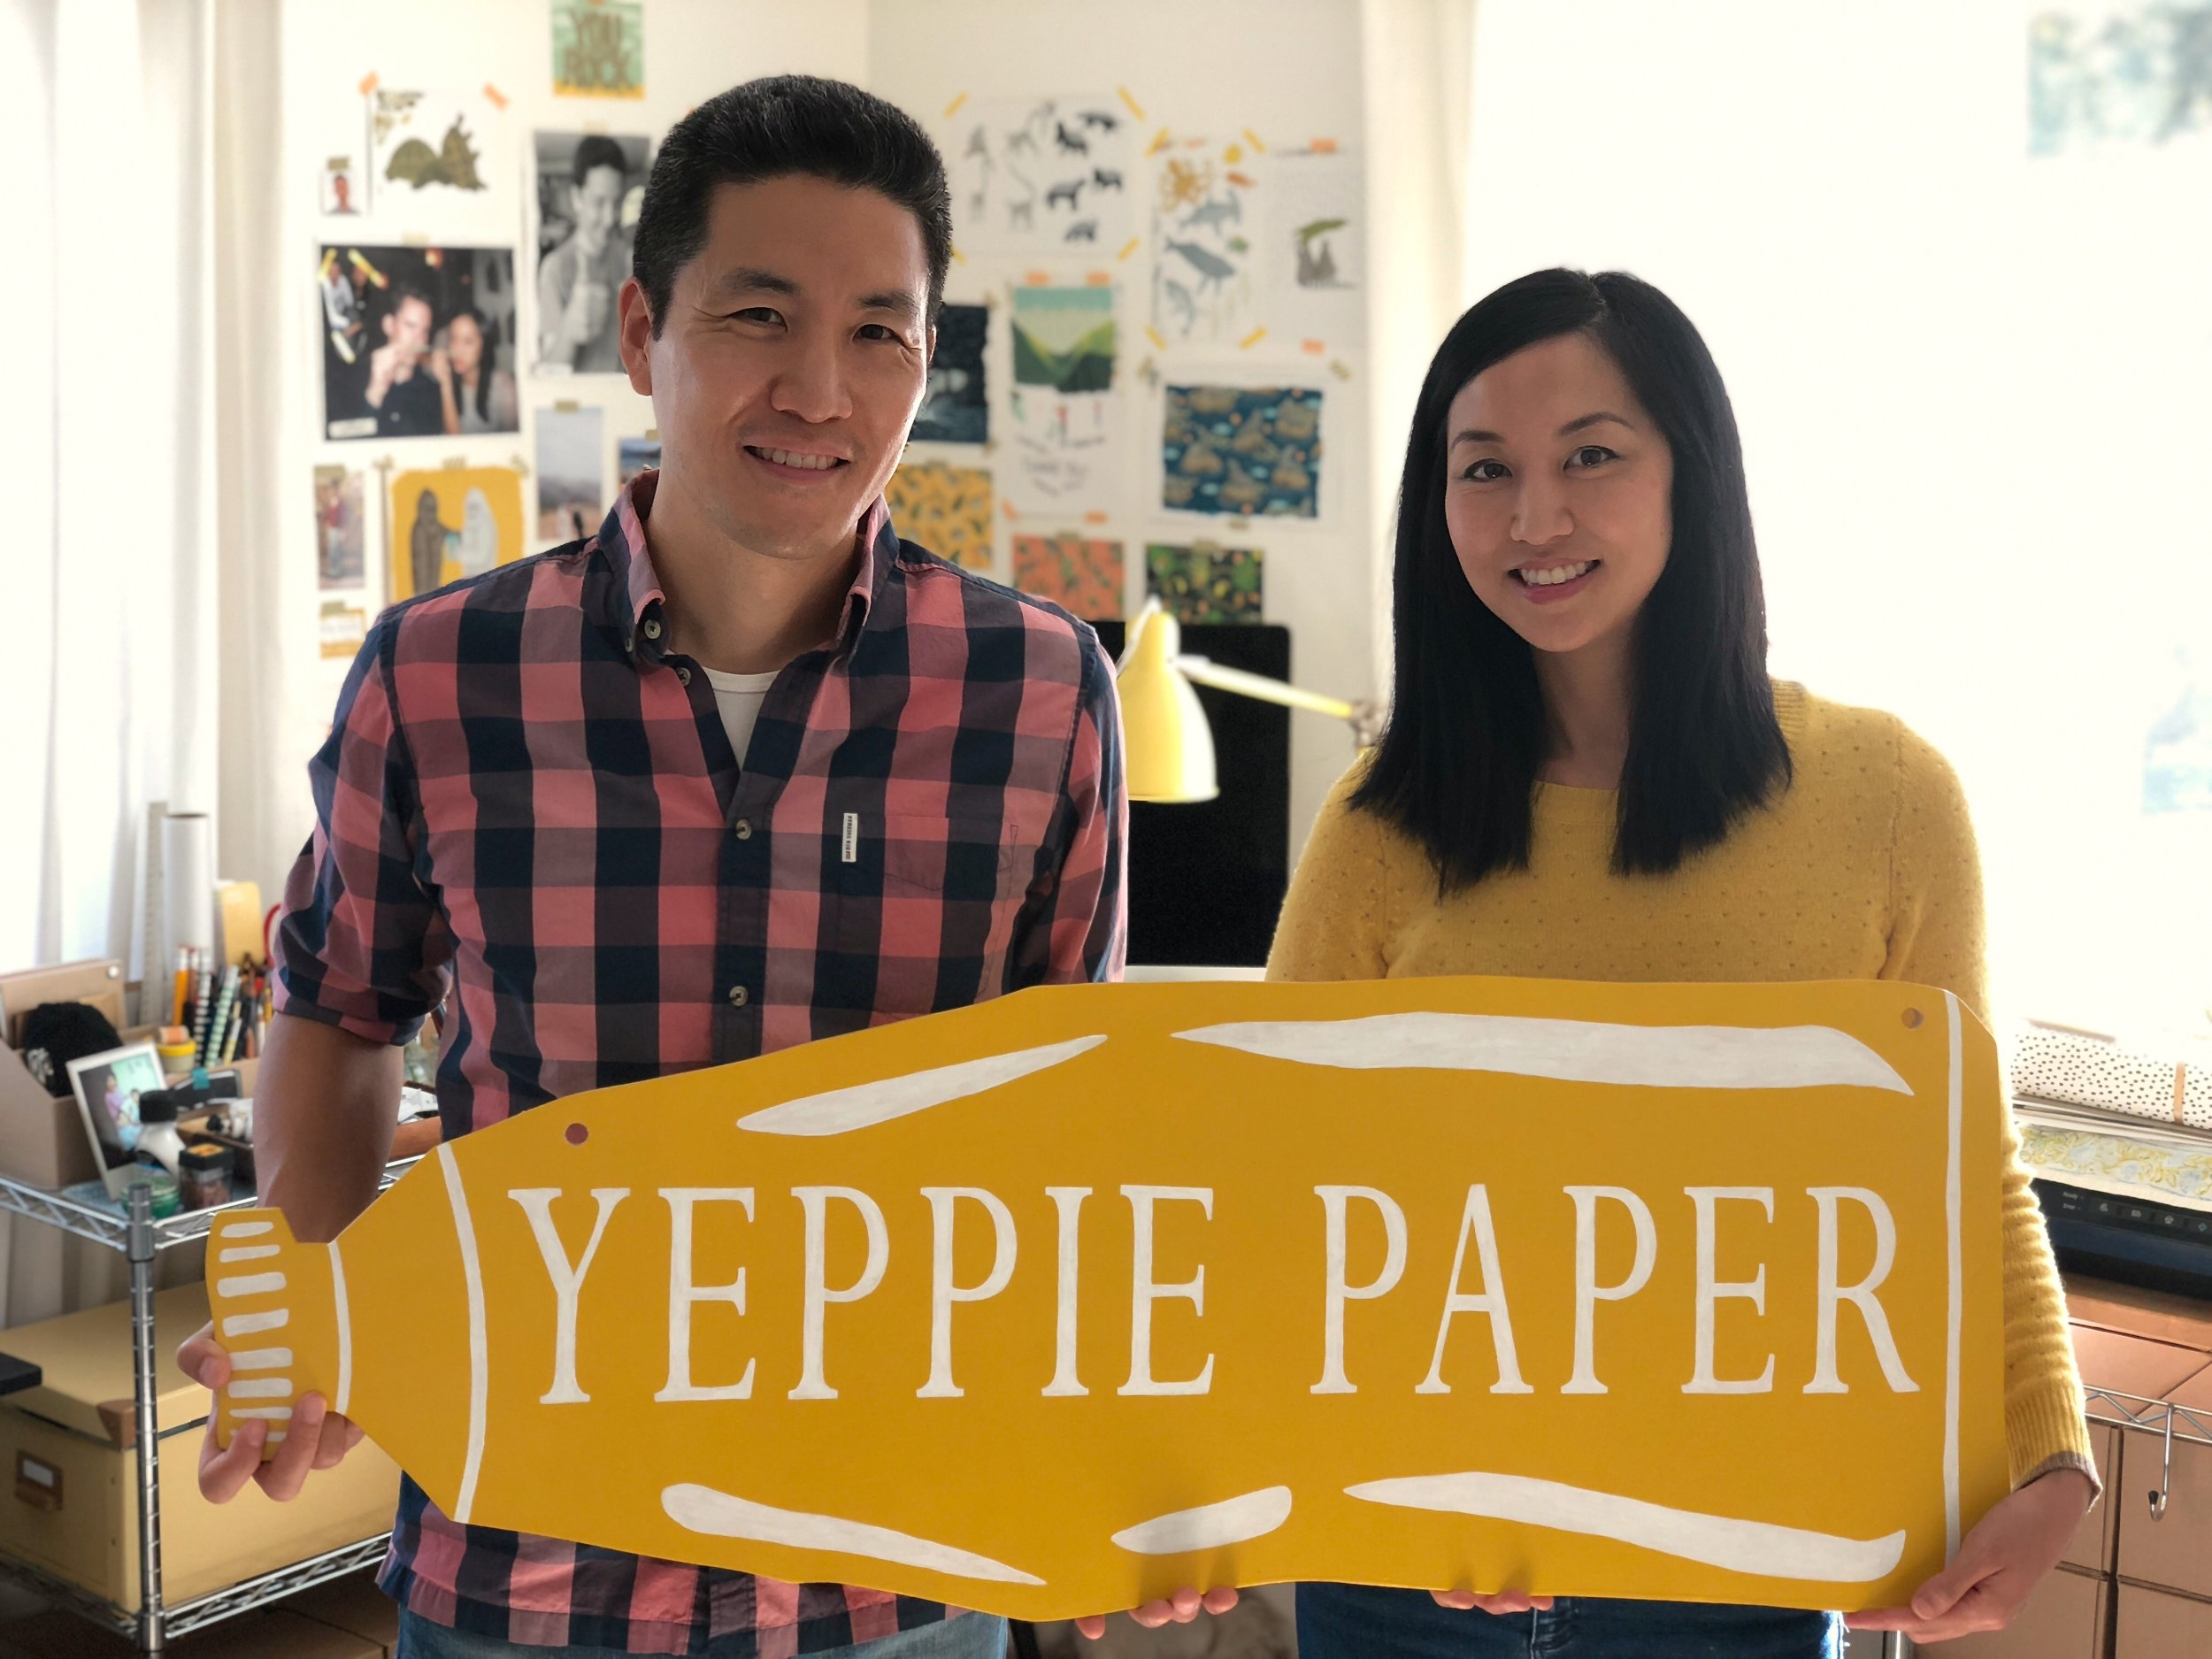 Brother and sister team Jim and Jennifer of Yeppie Paper